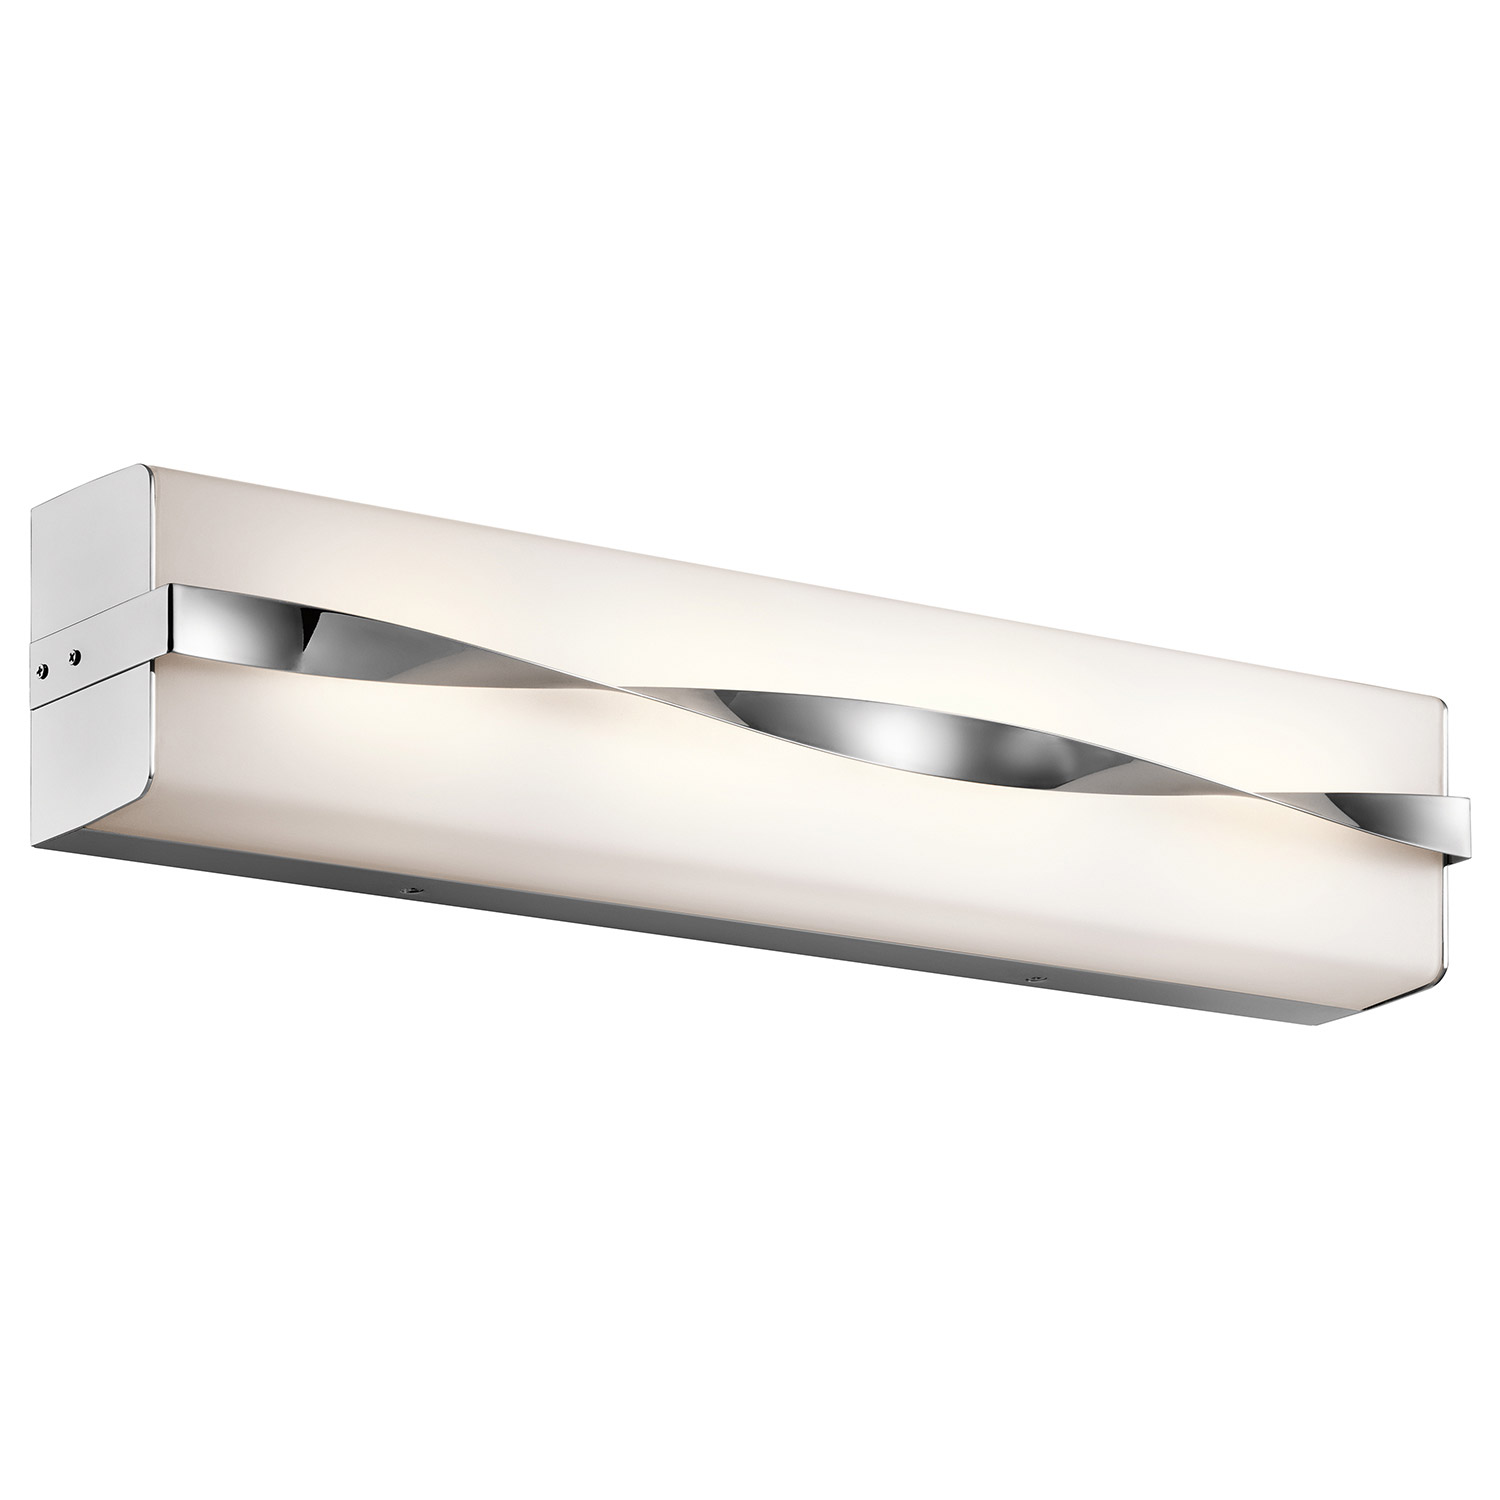 Kichler 45846CHLED Tori LED Vanity Light